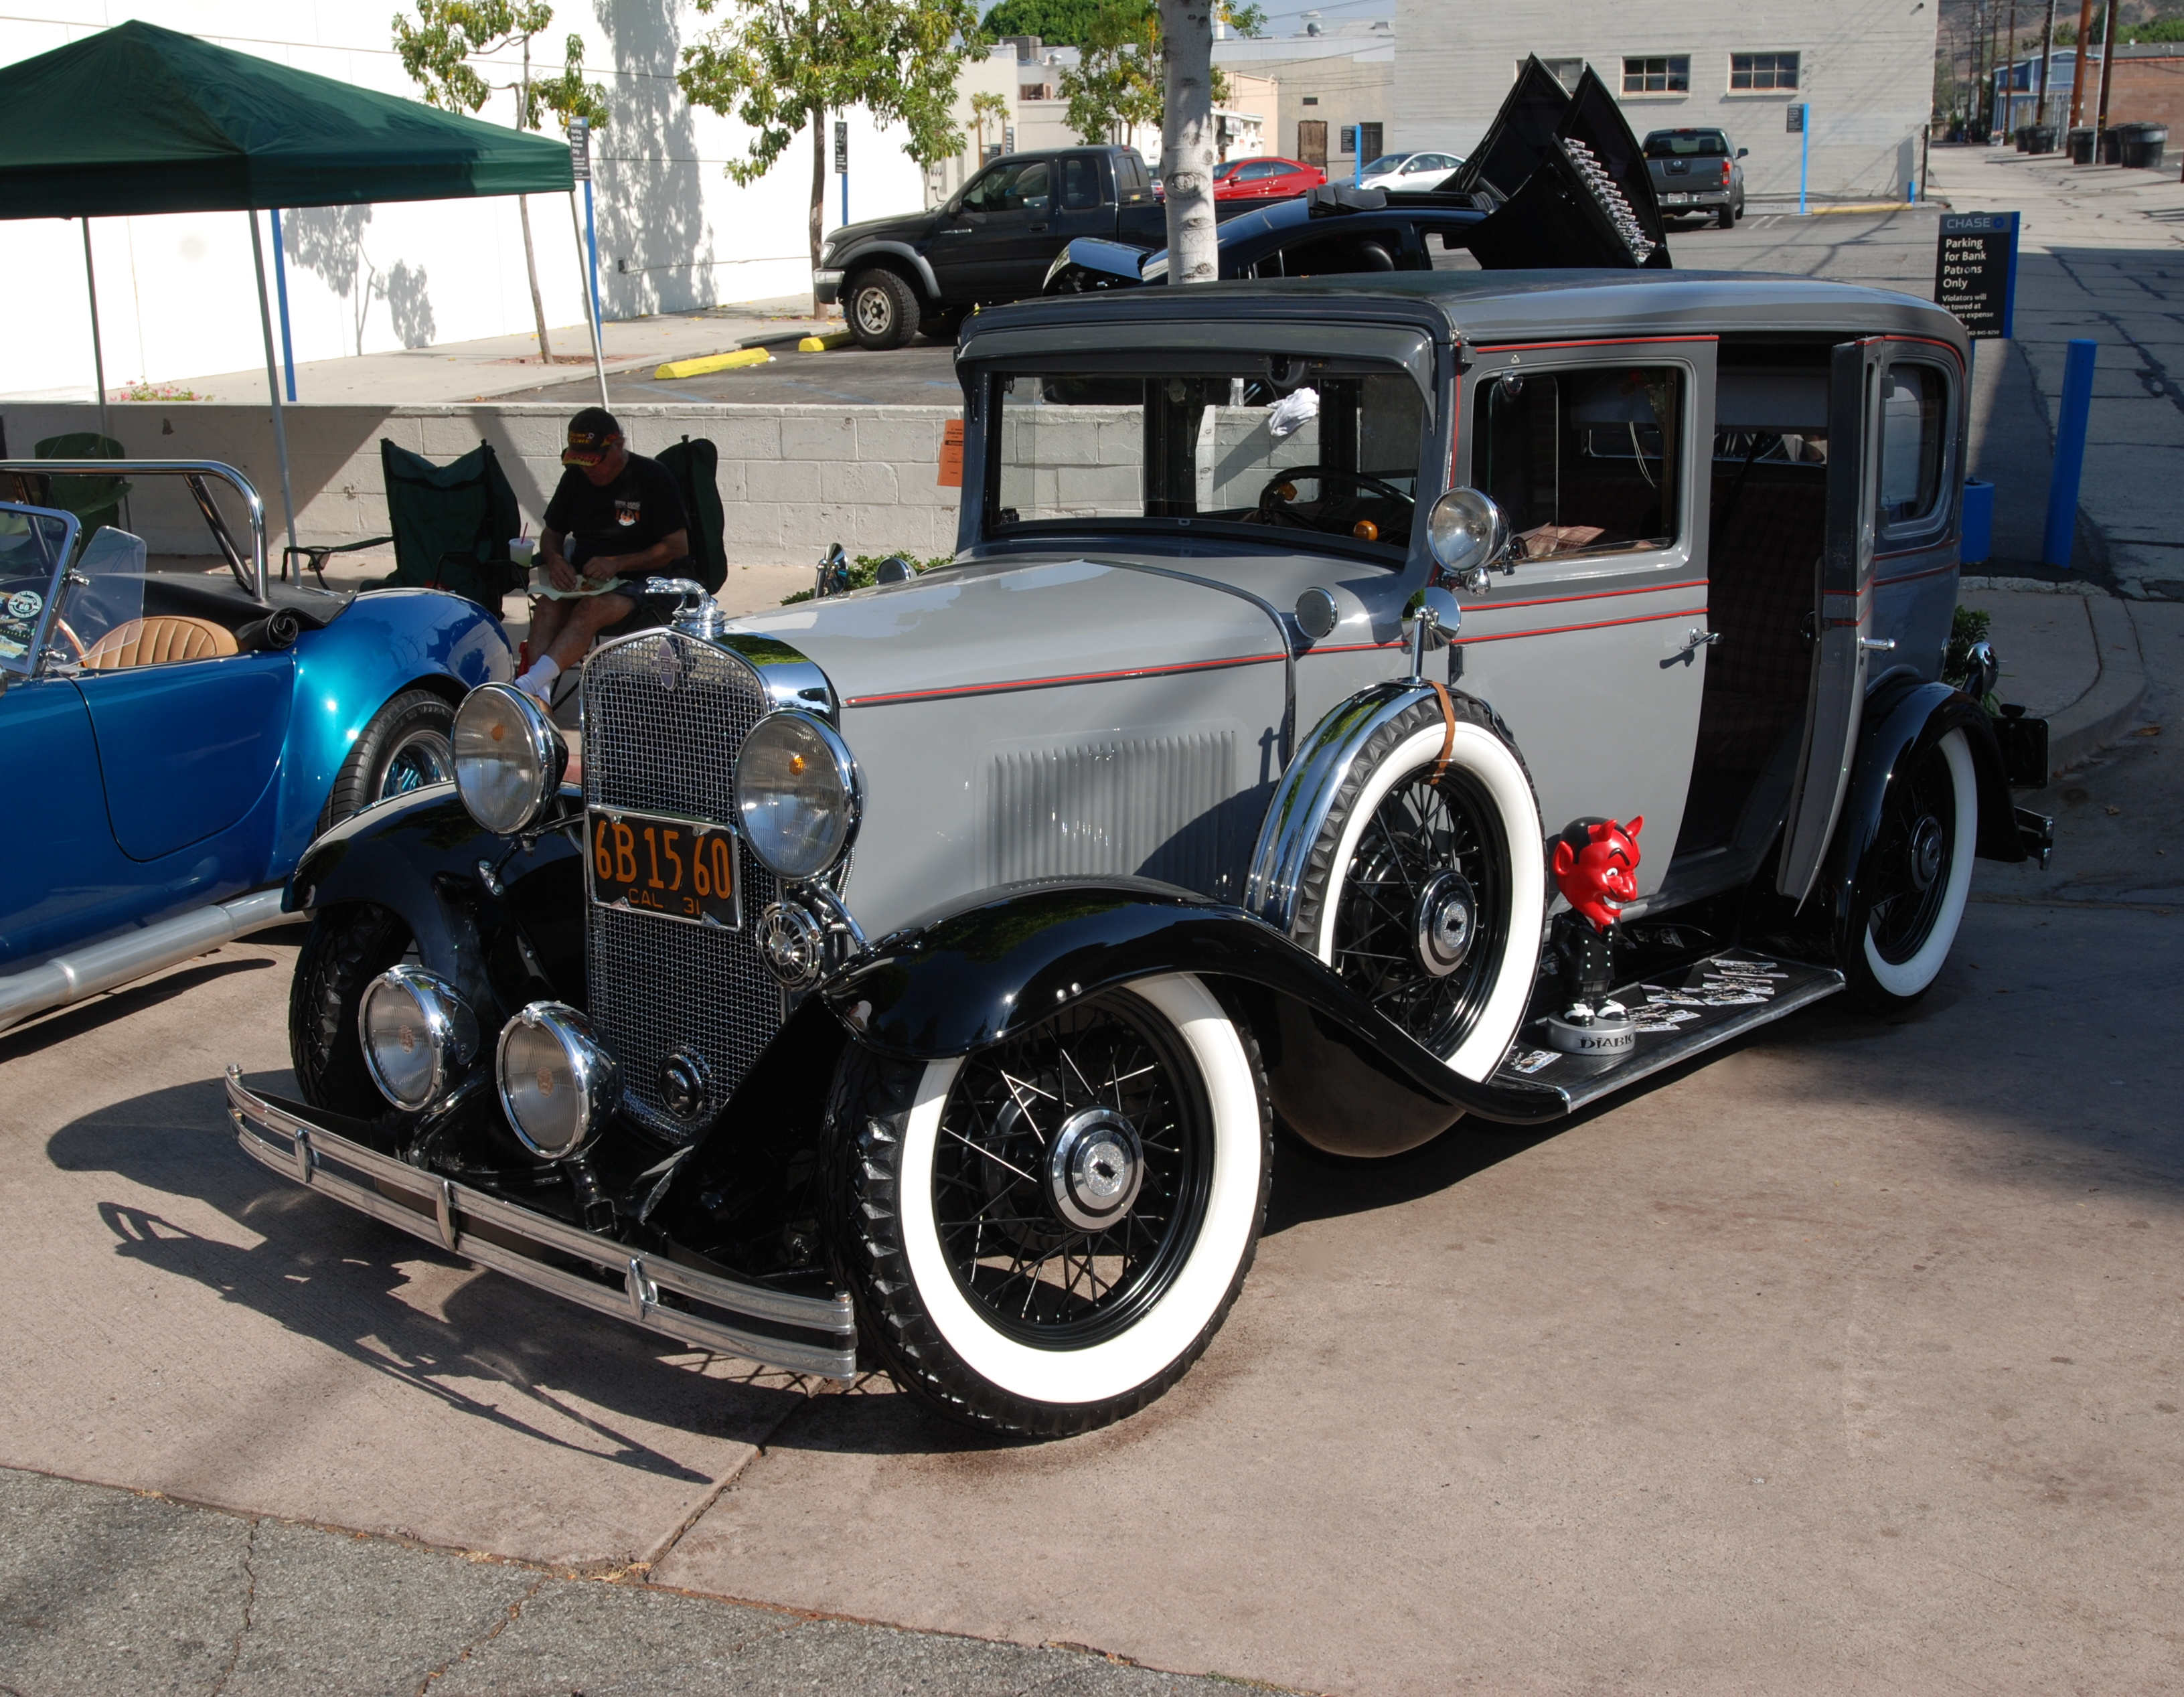 The Th Annual Uptown Whittier Car Show Cool Cars Displayed - Black cool cars